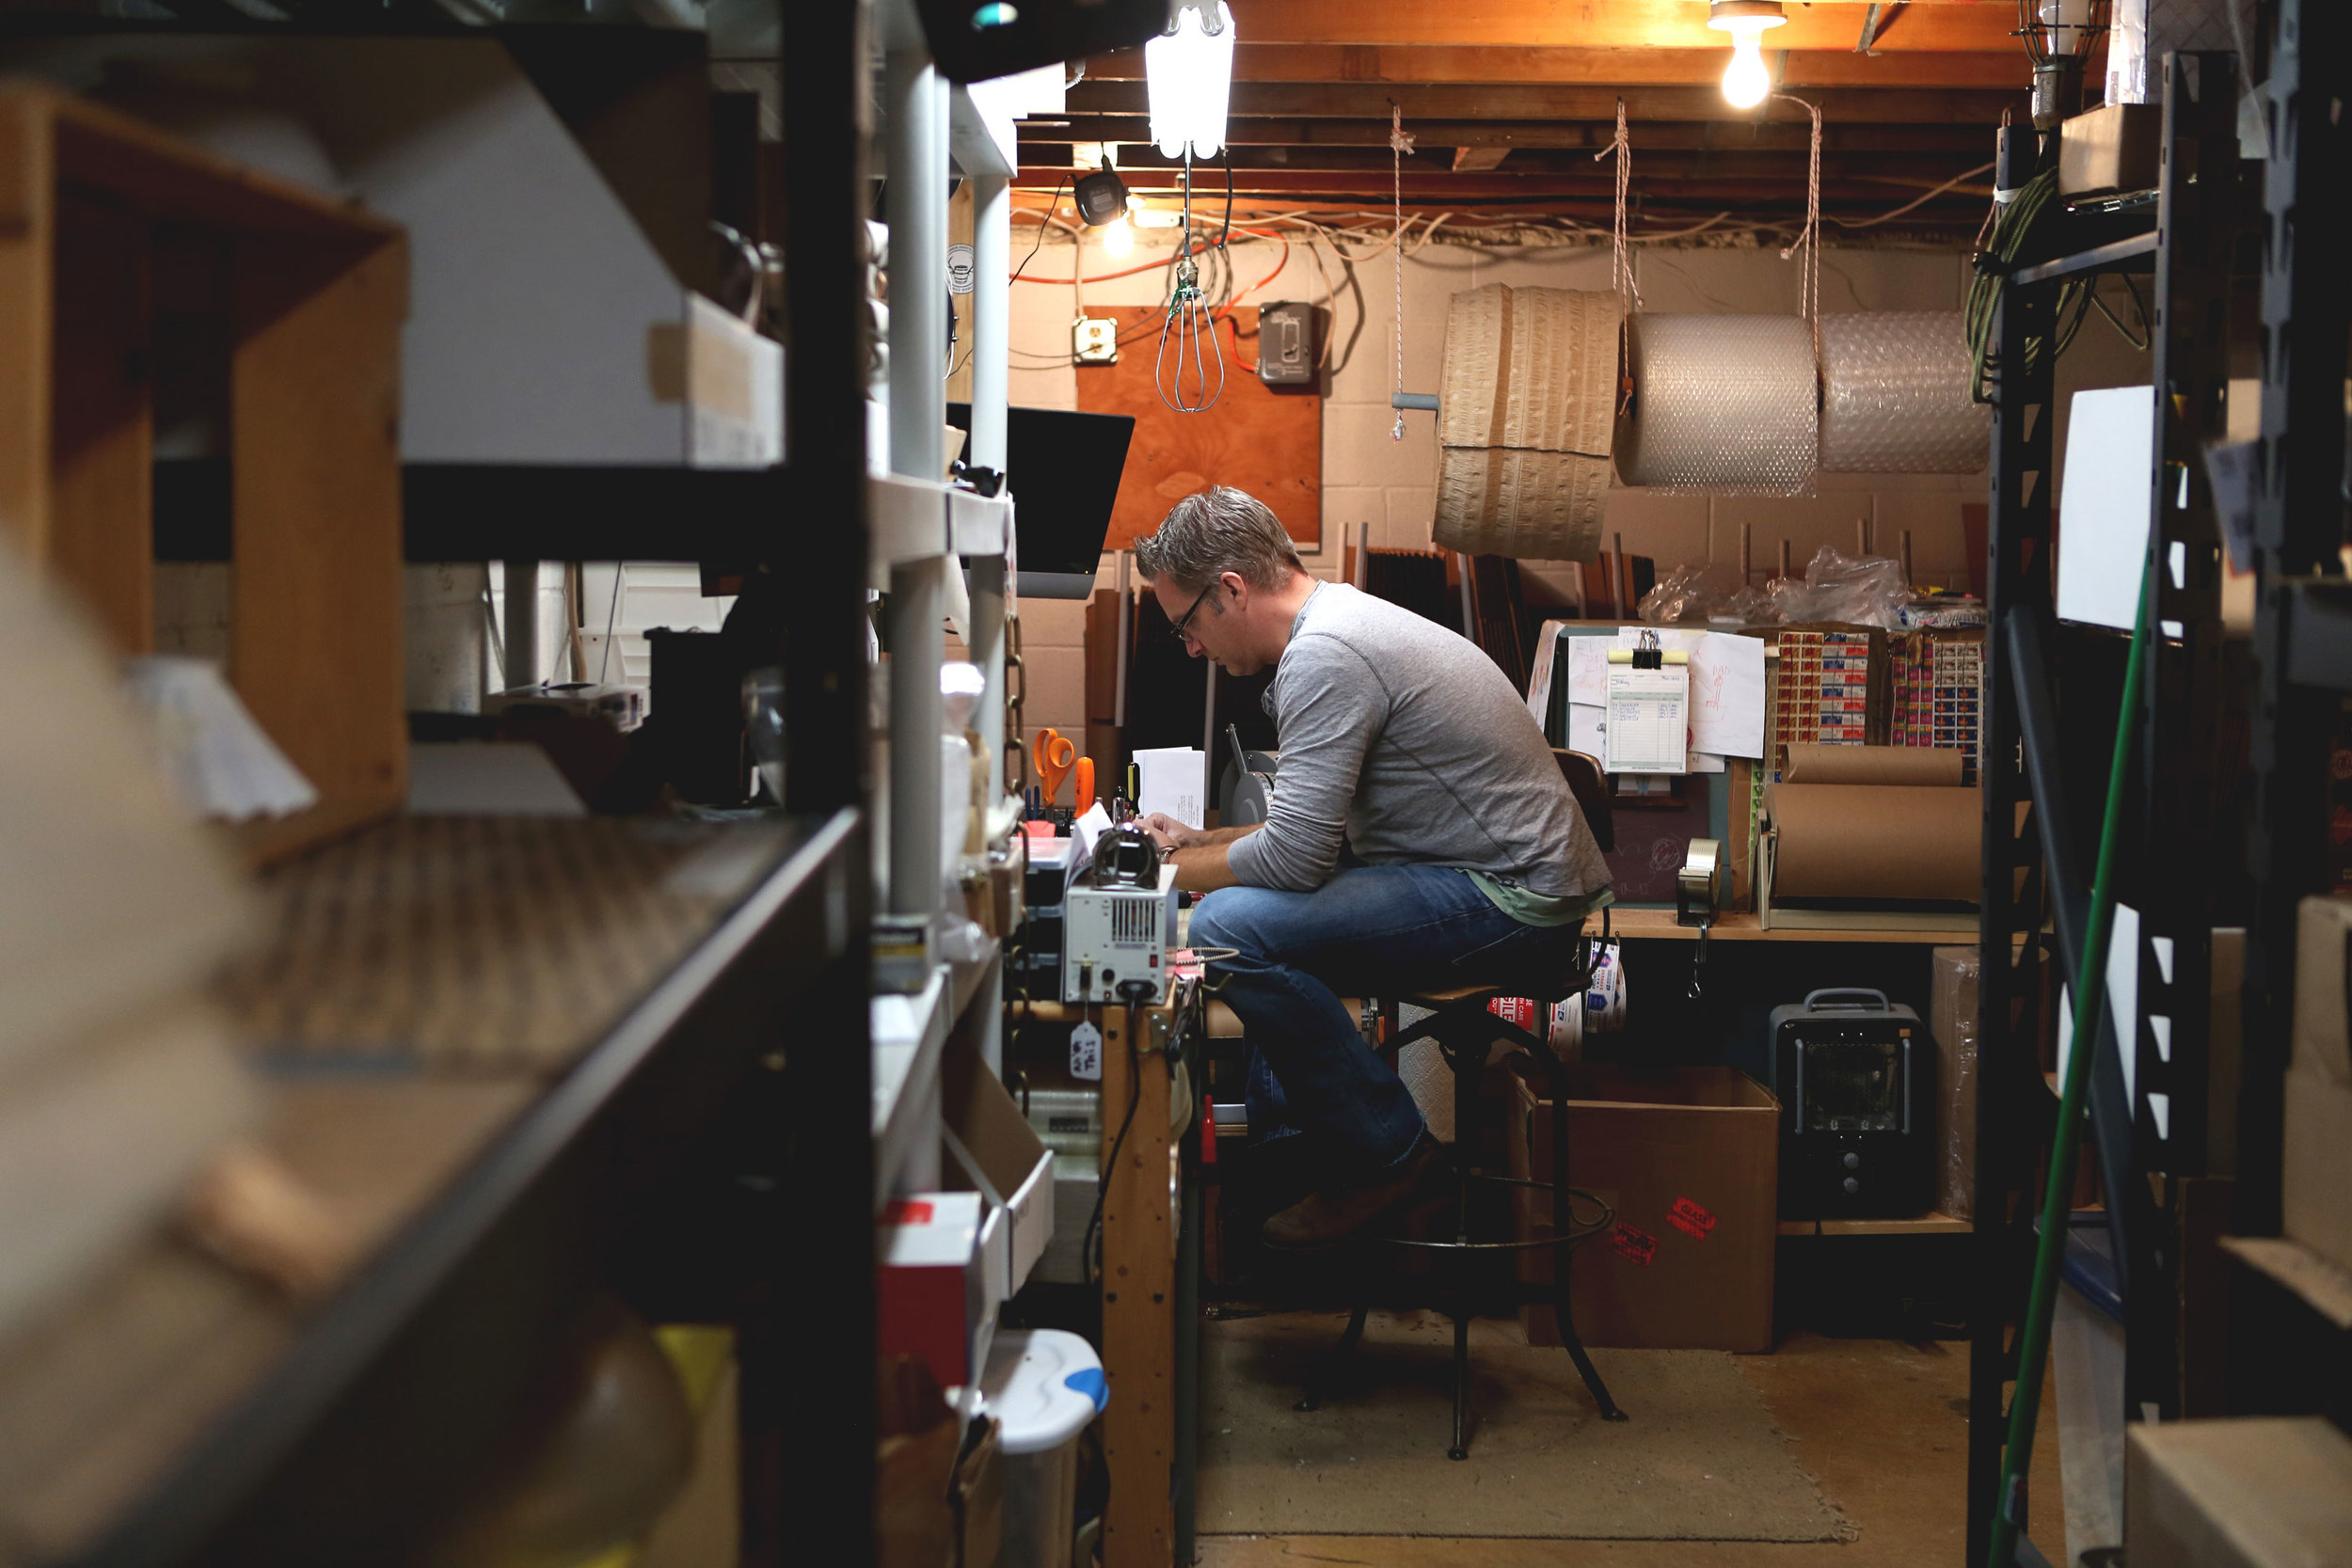 Brad Michael in the Lucent Lampworks shop in Bucks County, PA.